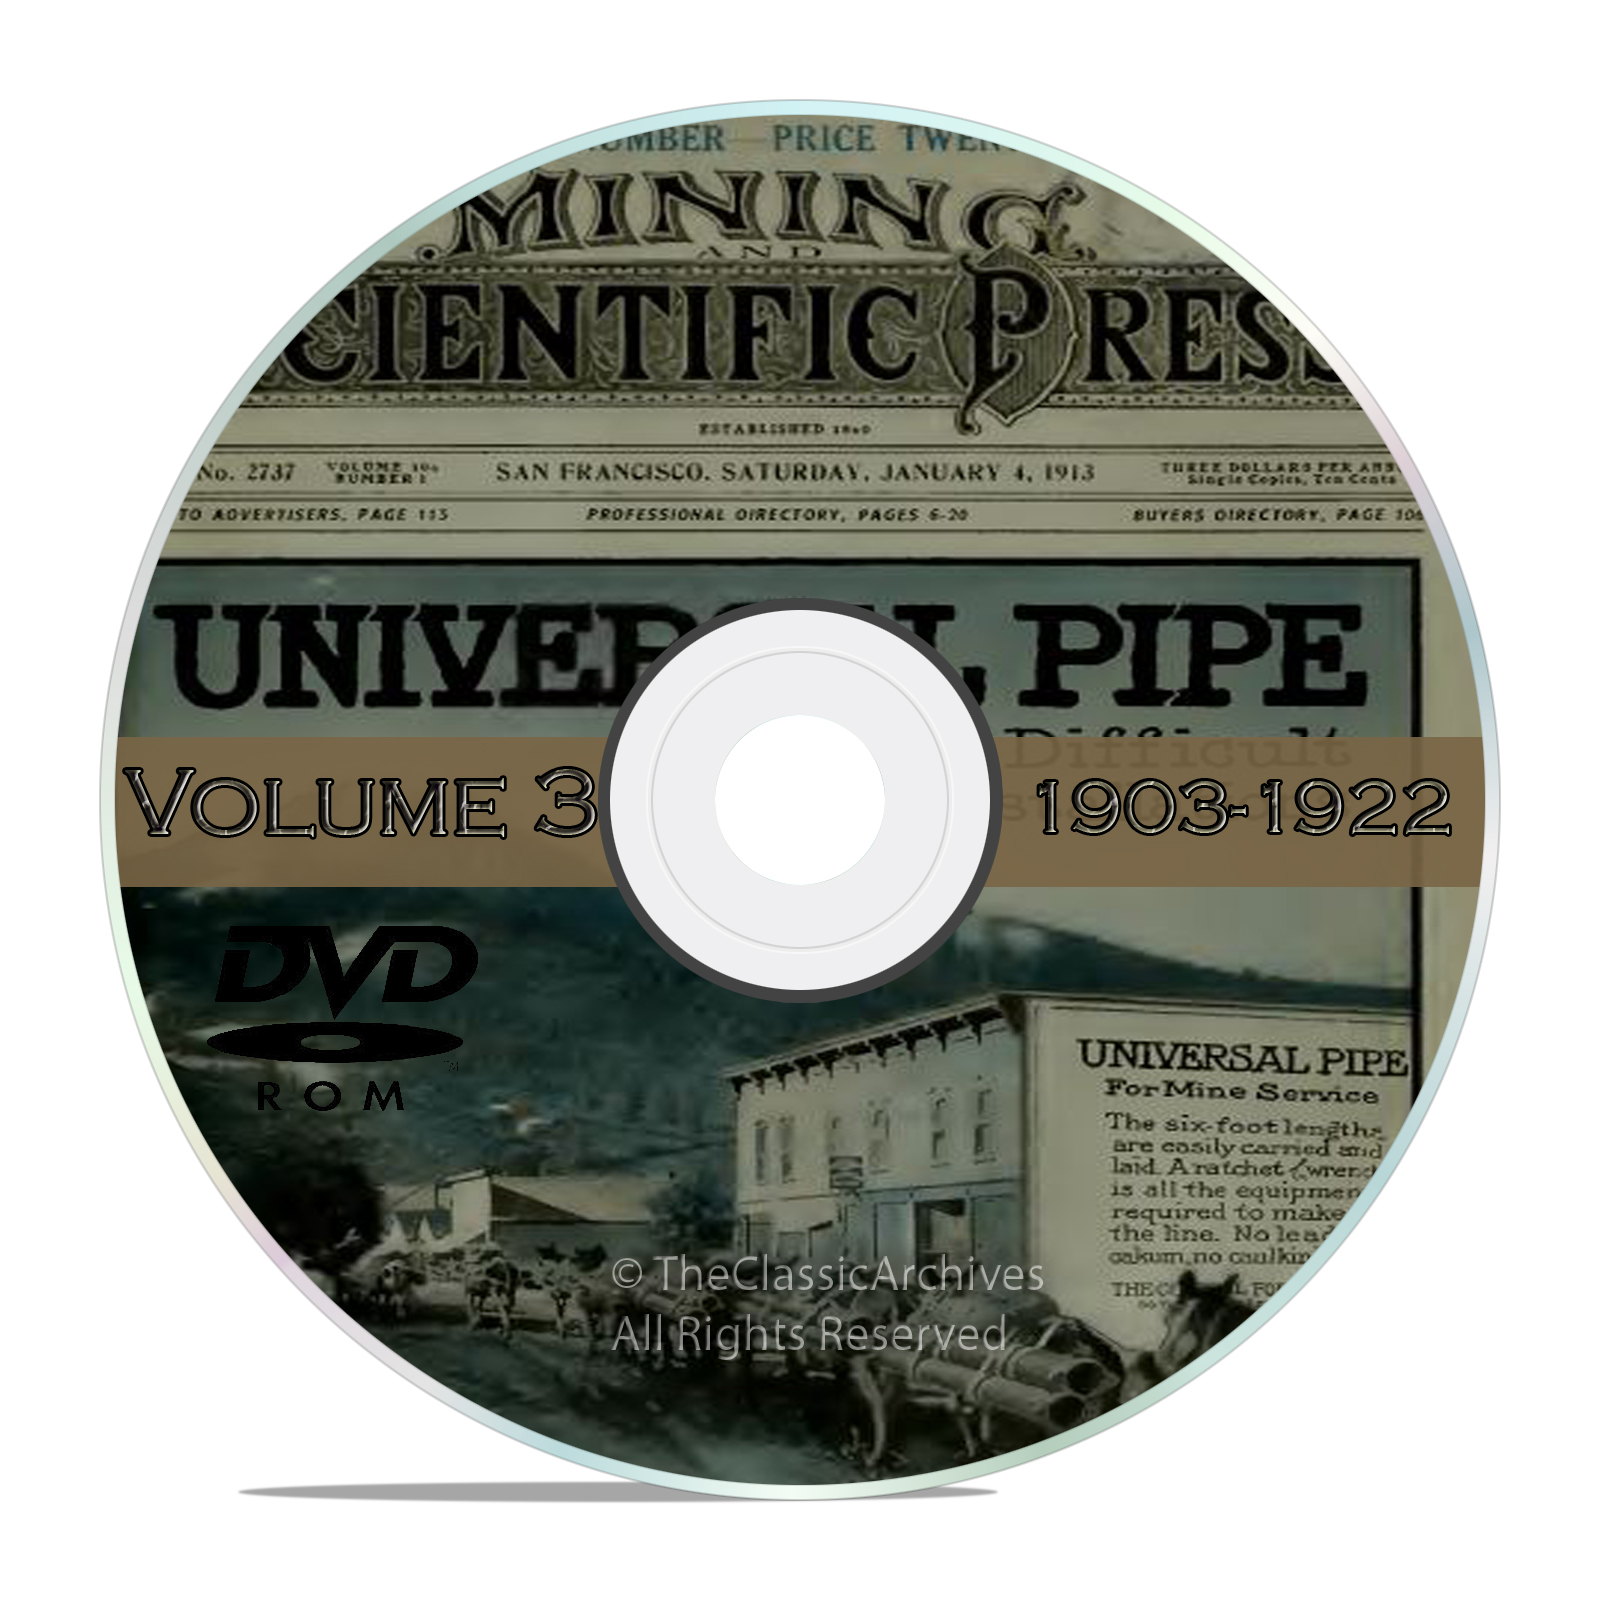 Vintage Mining and Scientific Press, 1903 - 1922, 1000 Back Issues Vol3 DVD